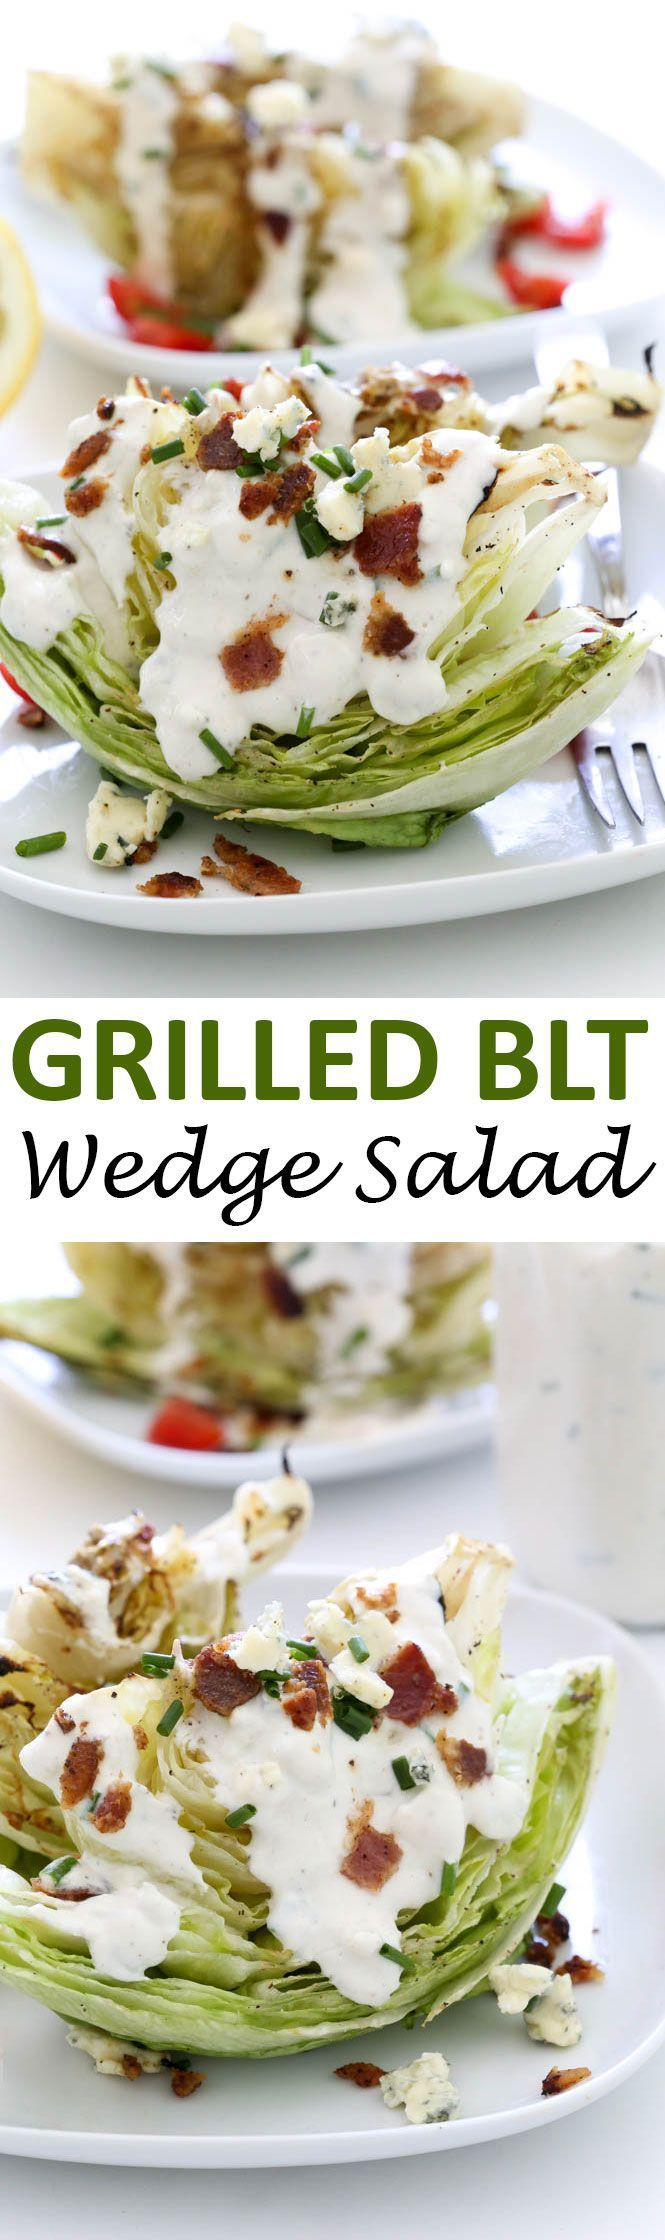 25+ best ideas about Wedge salad on Pinterest | Appetizer ...